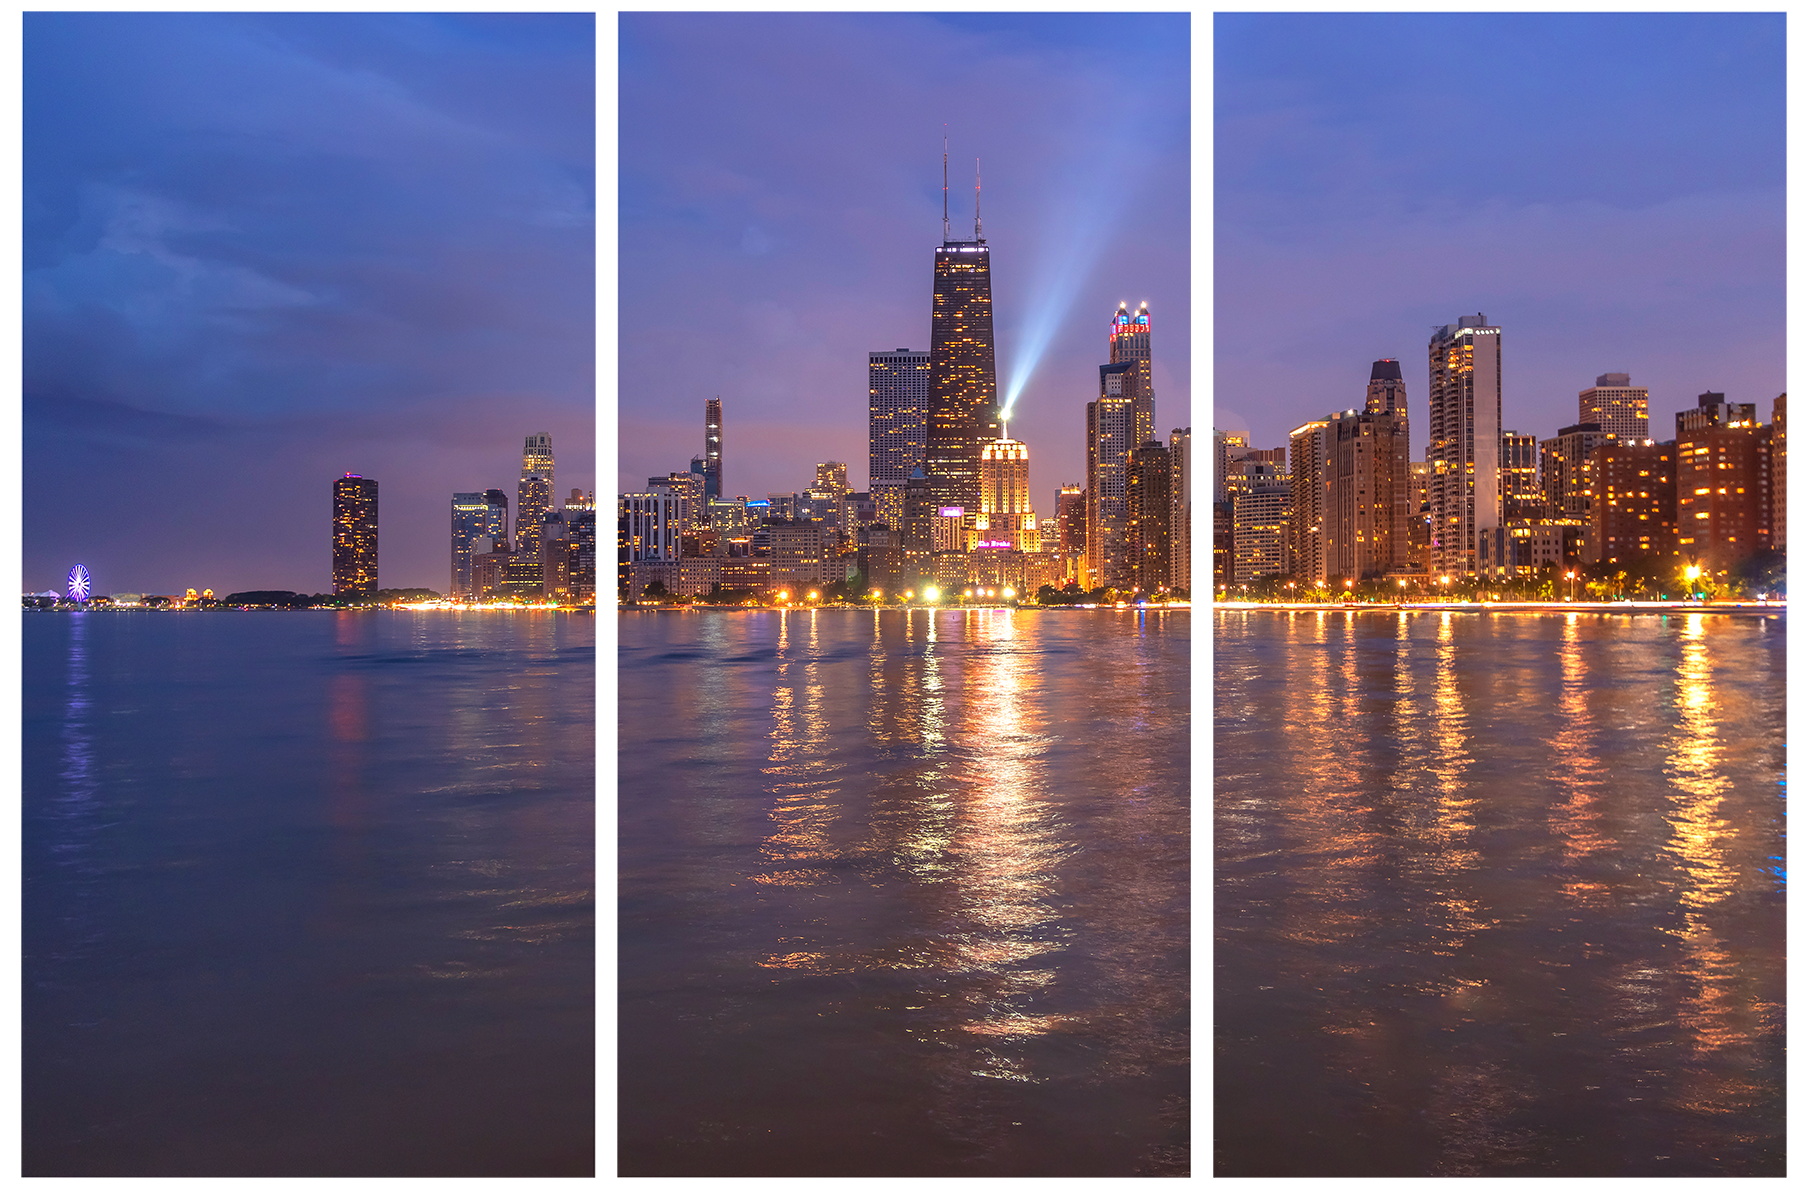 North avenue beach view of the chicago skyline gozt5y